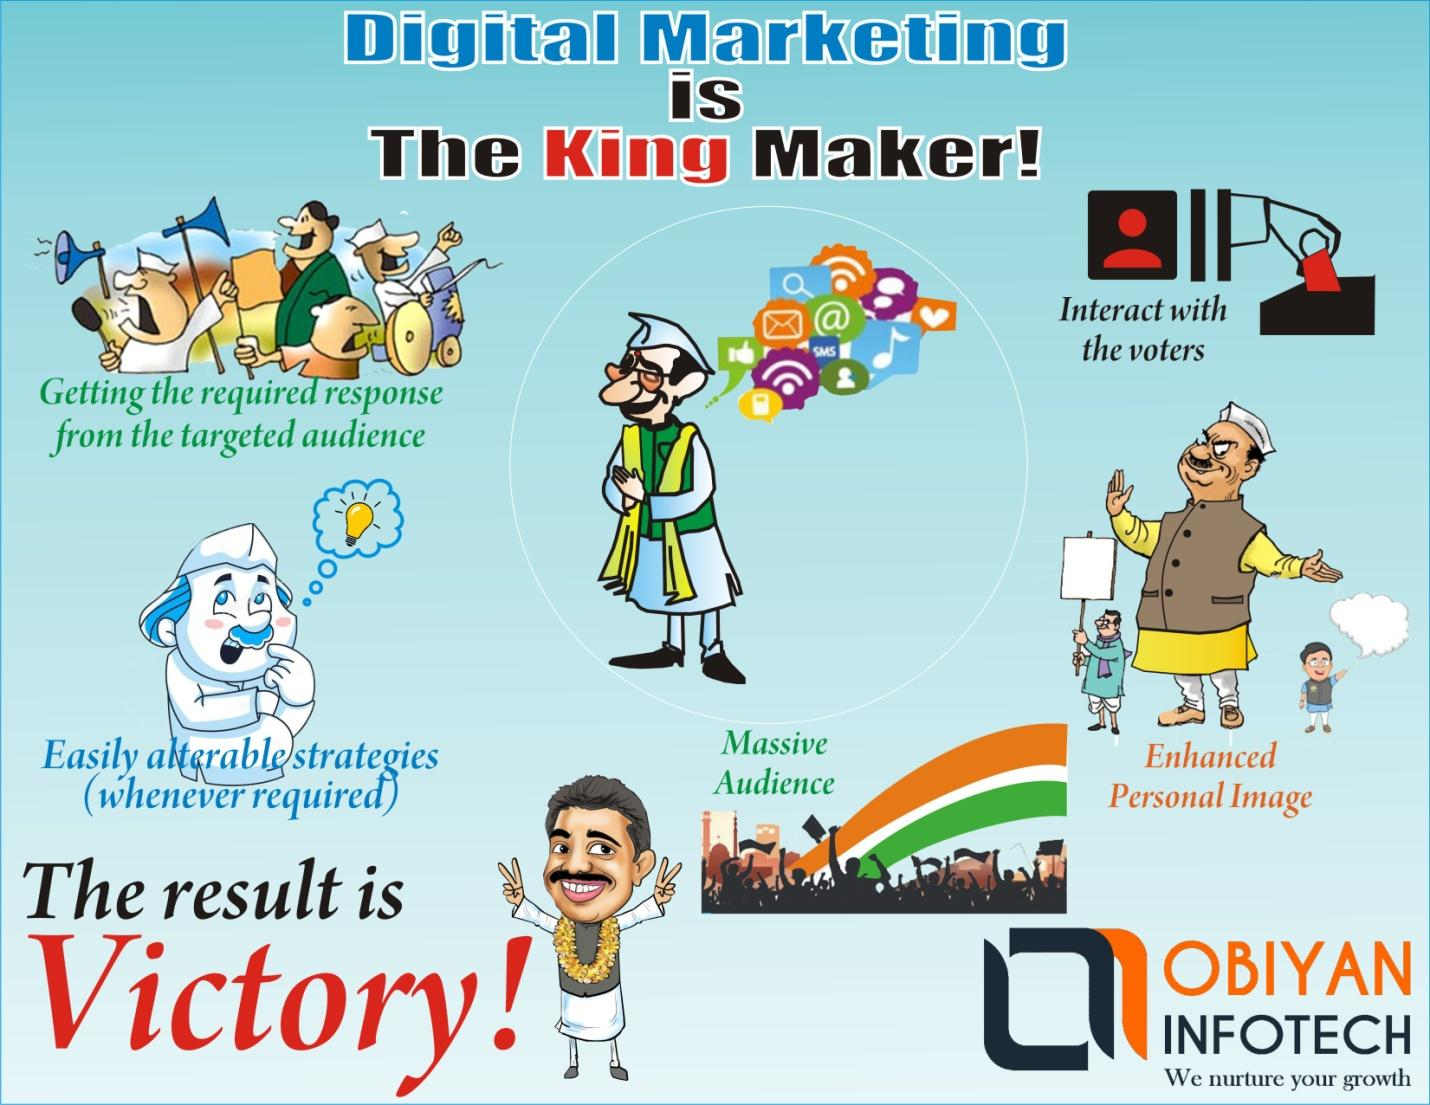 Digital Marketing for Politicians